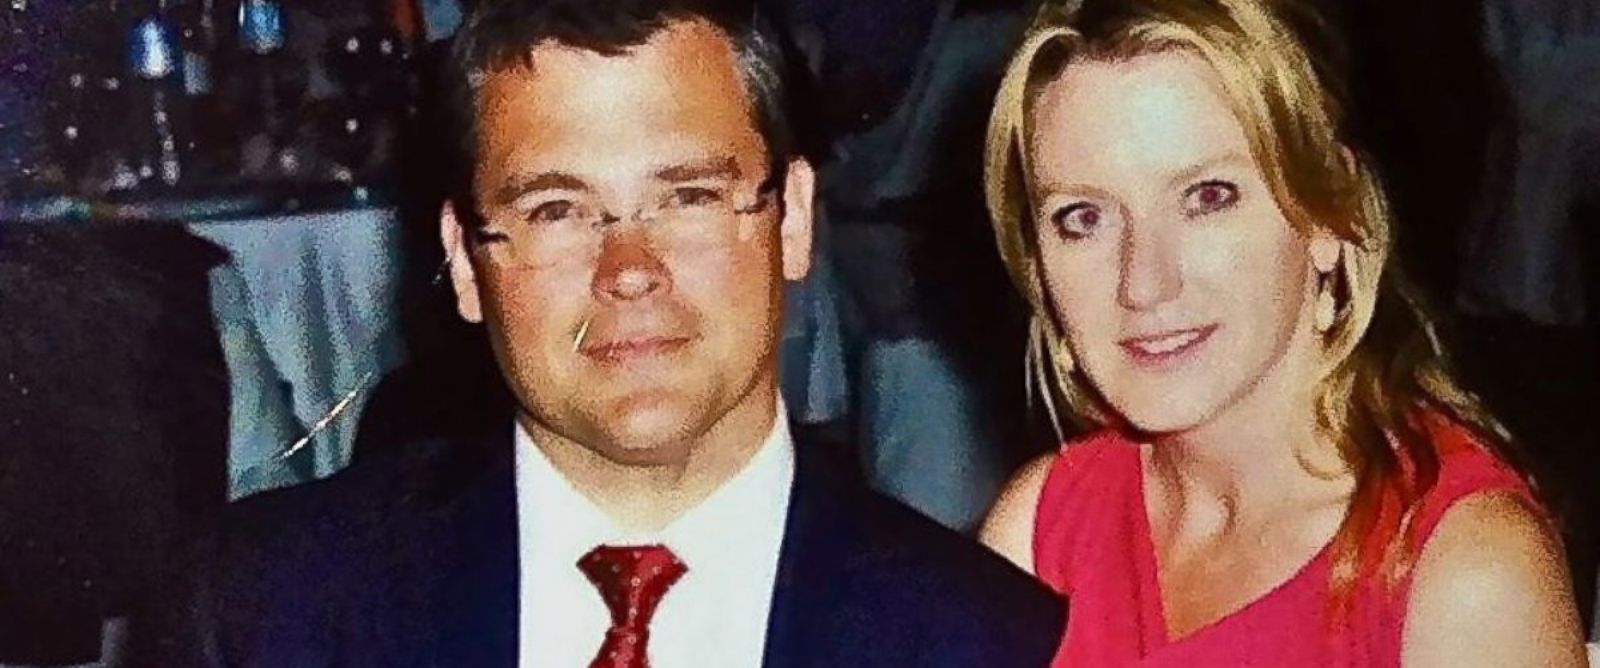 mystery surrounds dc mansion murders year later abc news photo savvas and amy savopoulos are shown in this photo posted to amy savapoulos facebook